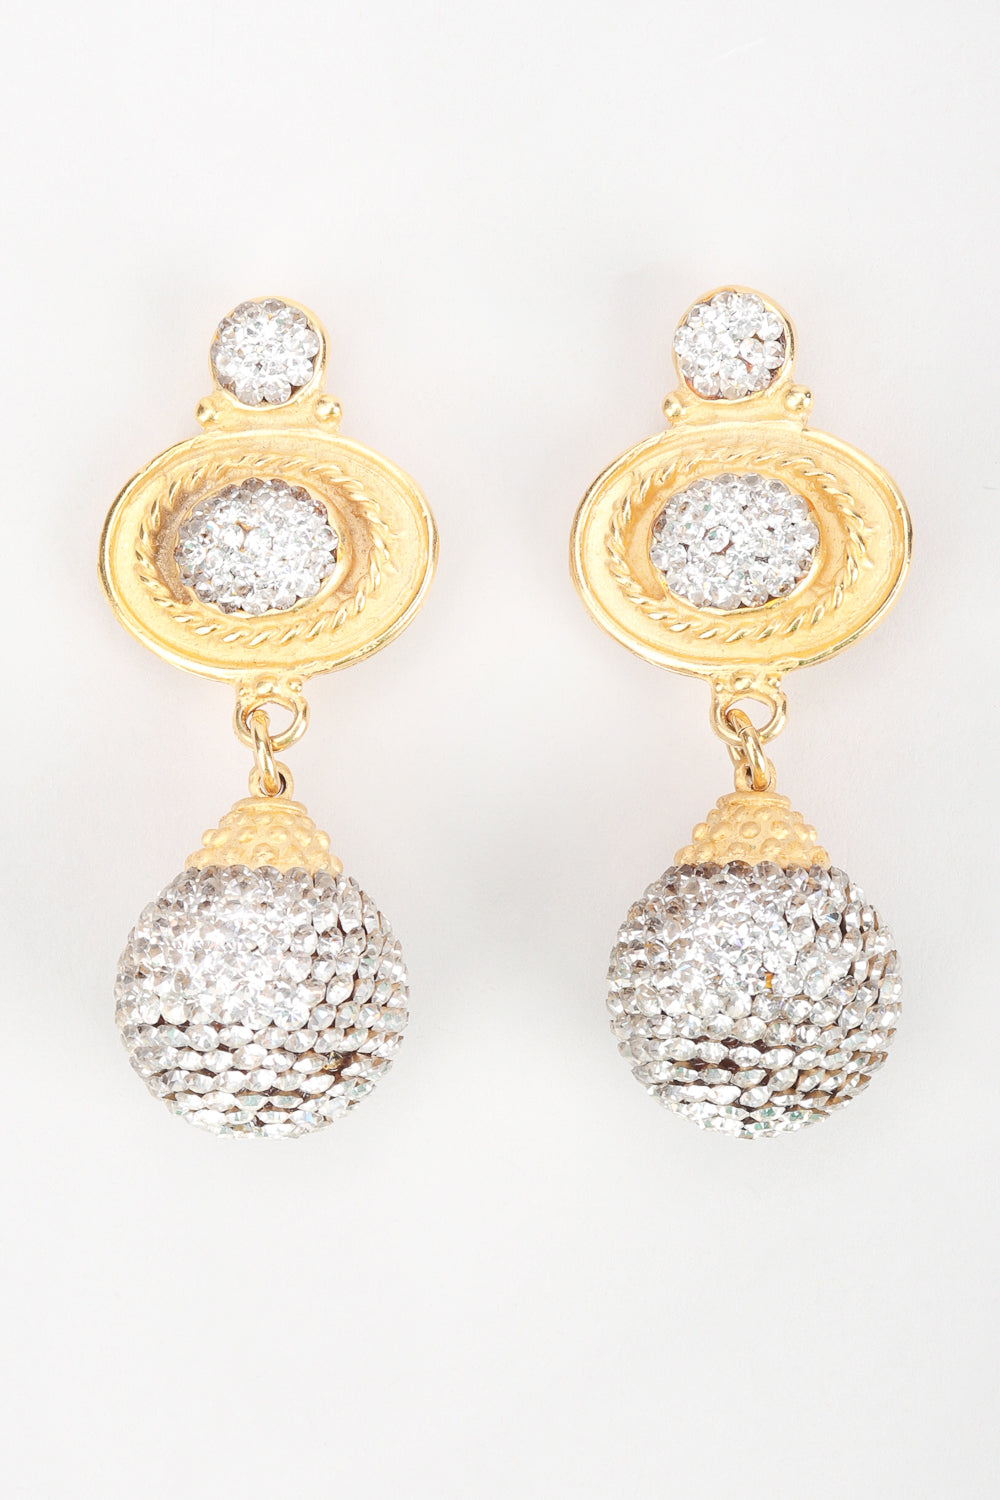 Recess Los Angeles Designer Consignment Resale Recycled Vintage Deanna Hamro Baroque Crystal Disco Ball Drop Earrings